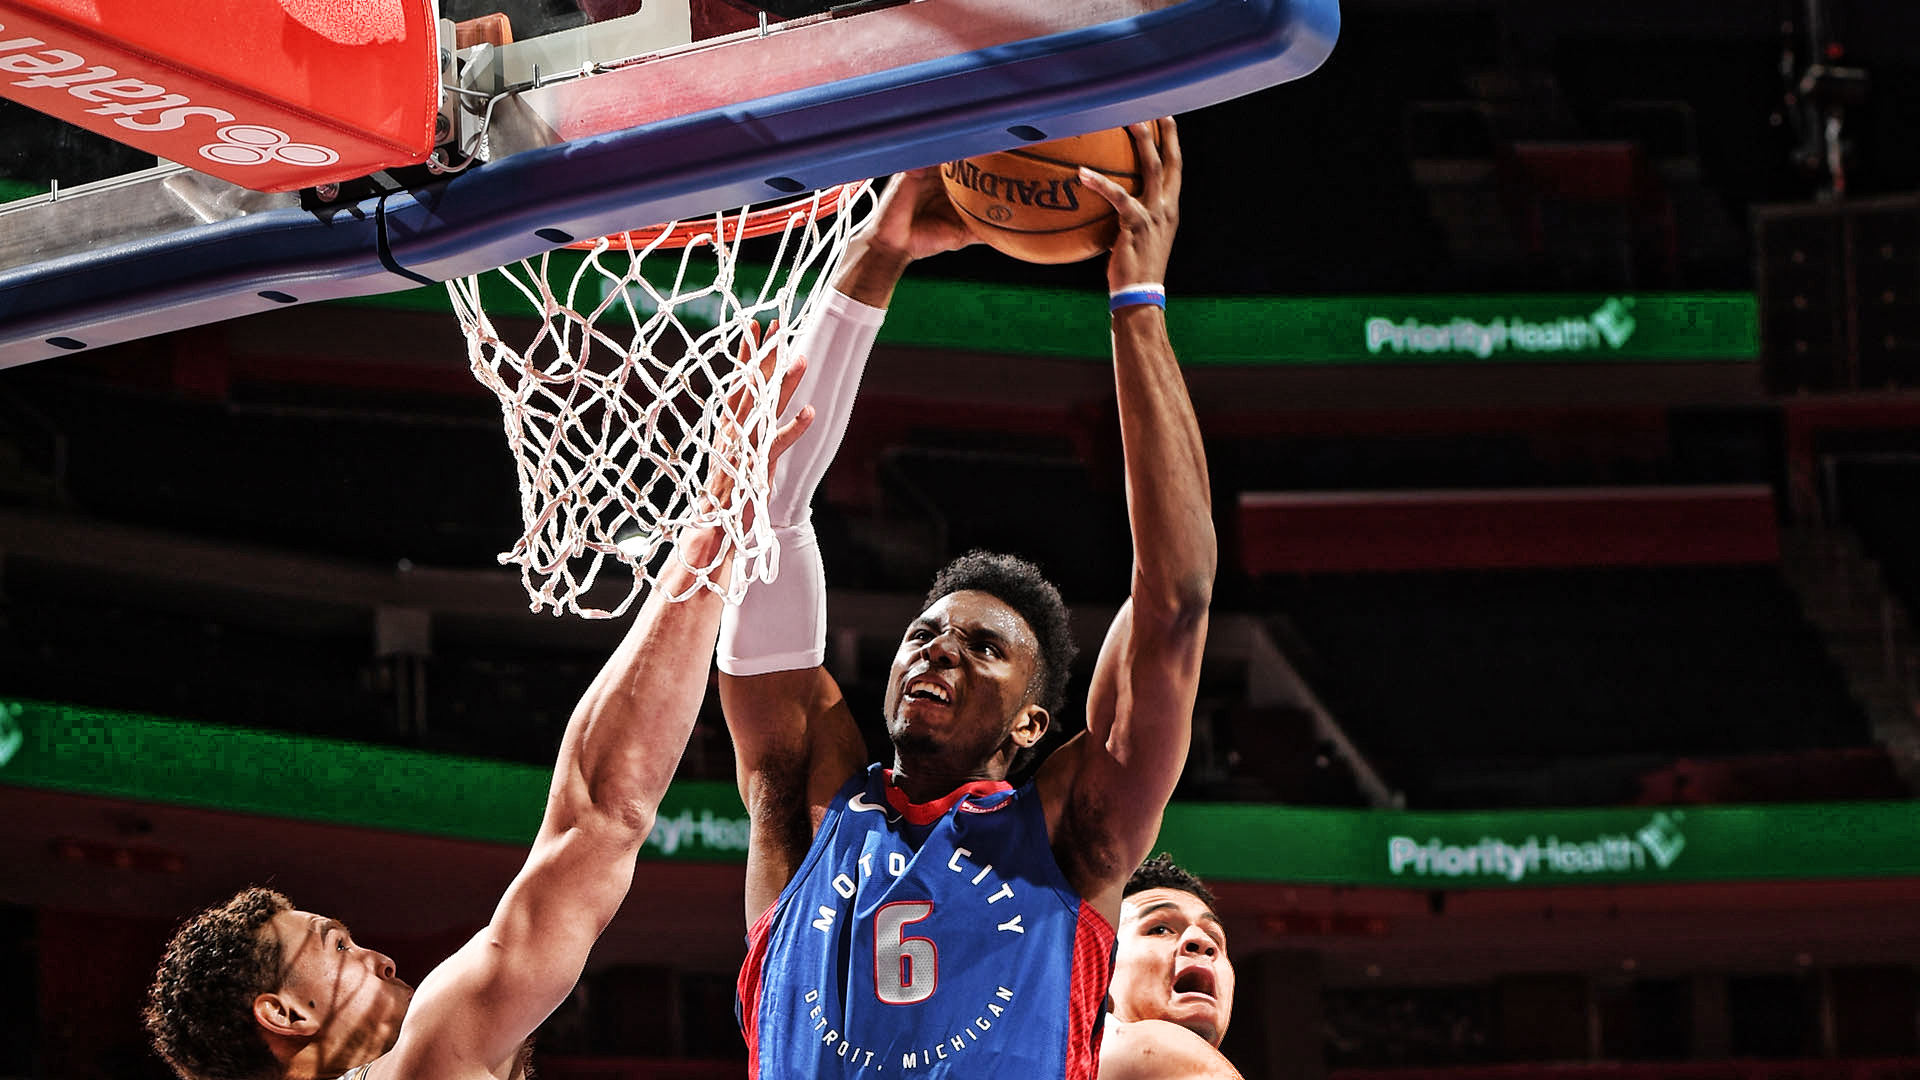 Dunk of the Week, presented by Draft Kings: Hamidou Diallo